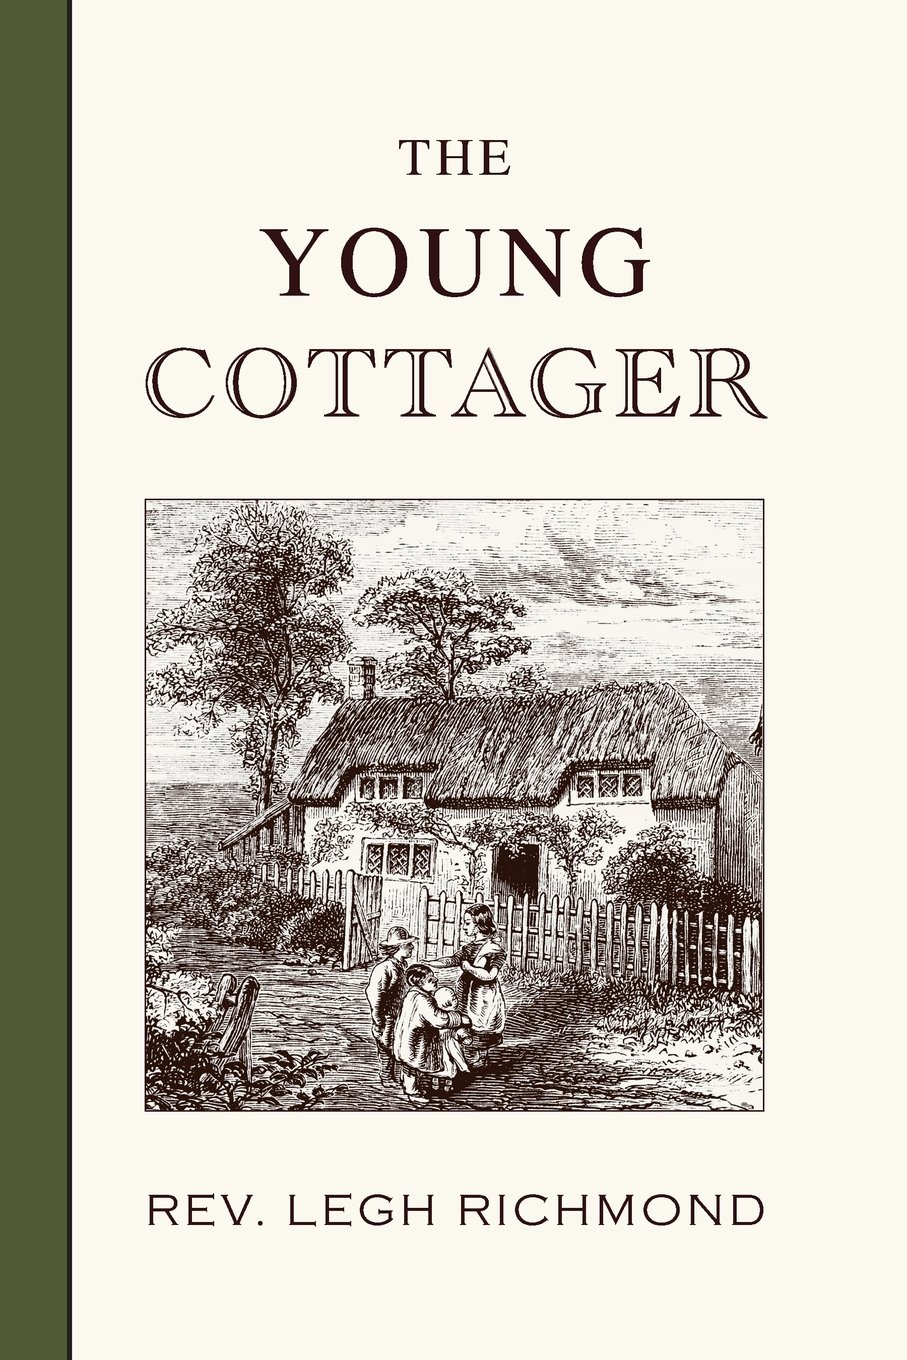 The Young Cottager